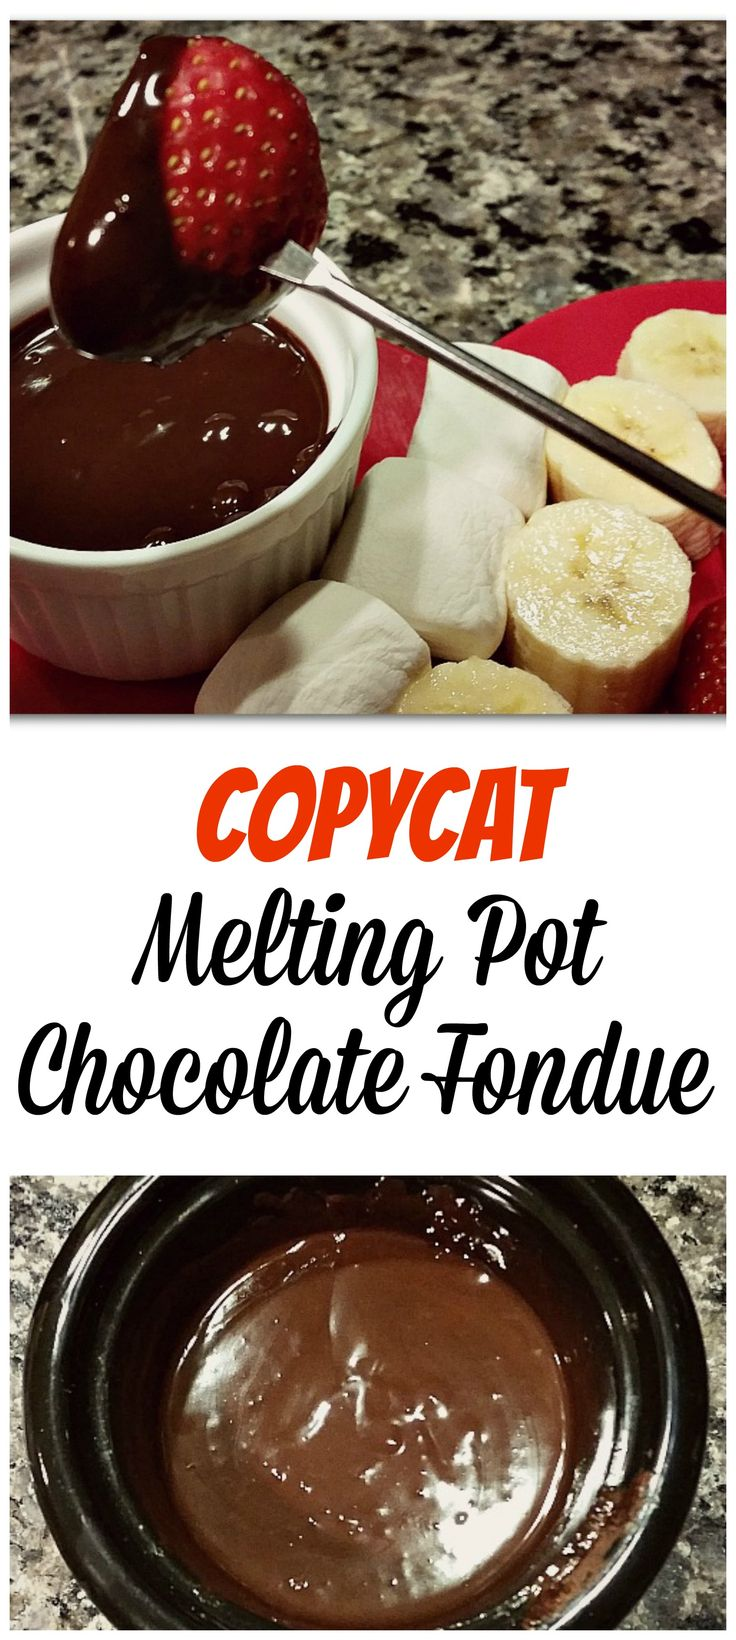 silver rings online Copycat Melting Pot Chocolate Fondue with Grand Marnier  Perfect dessert for Valentine  39 s Day   Both vegan friendly and gluten free